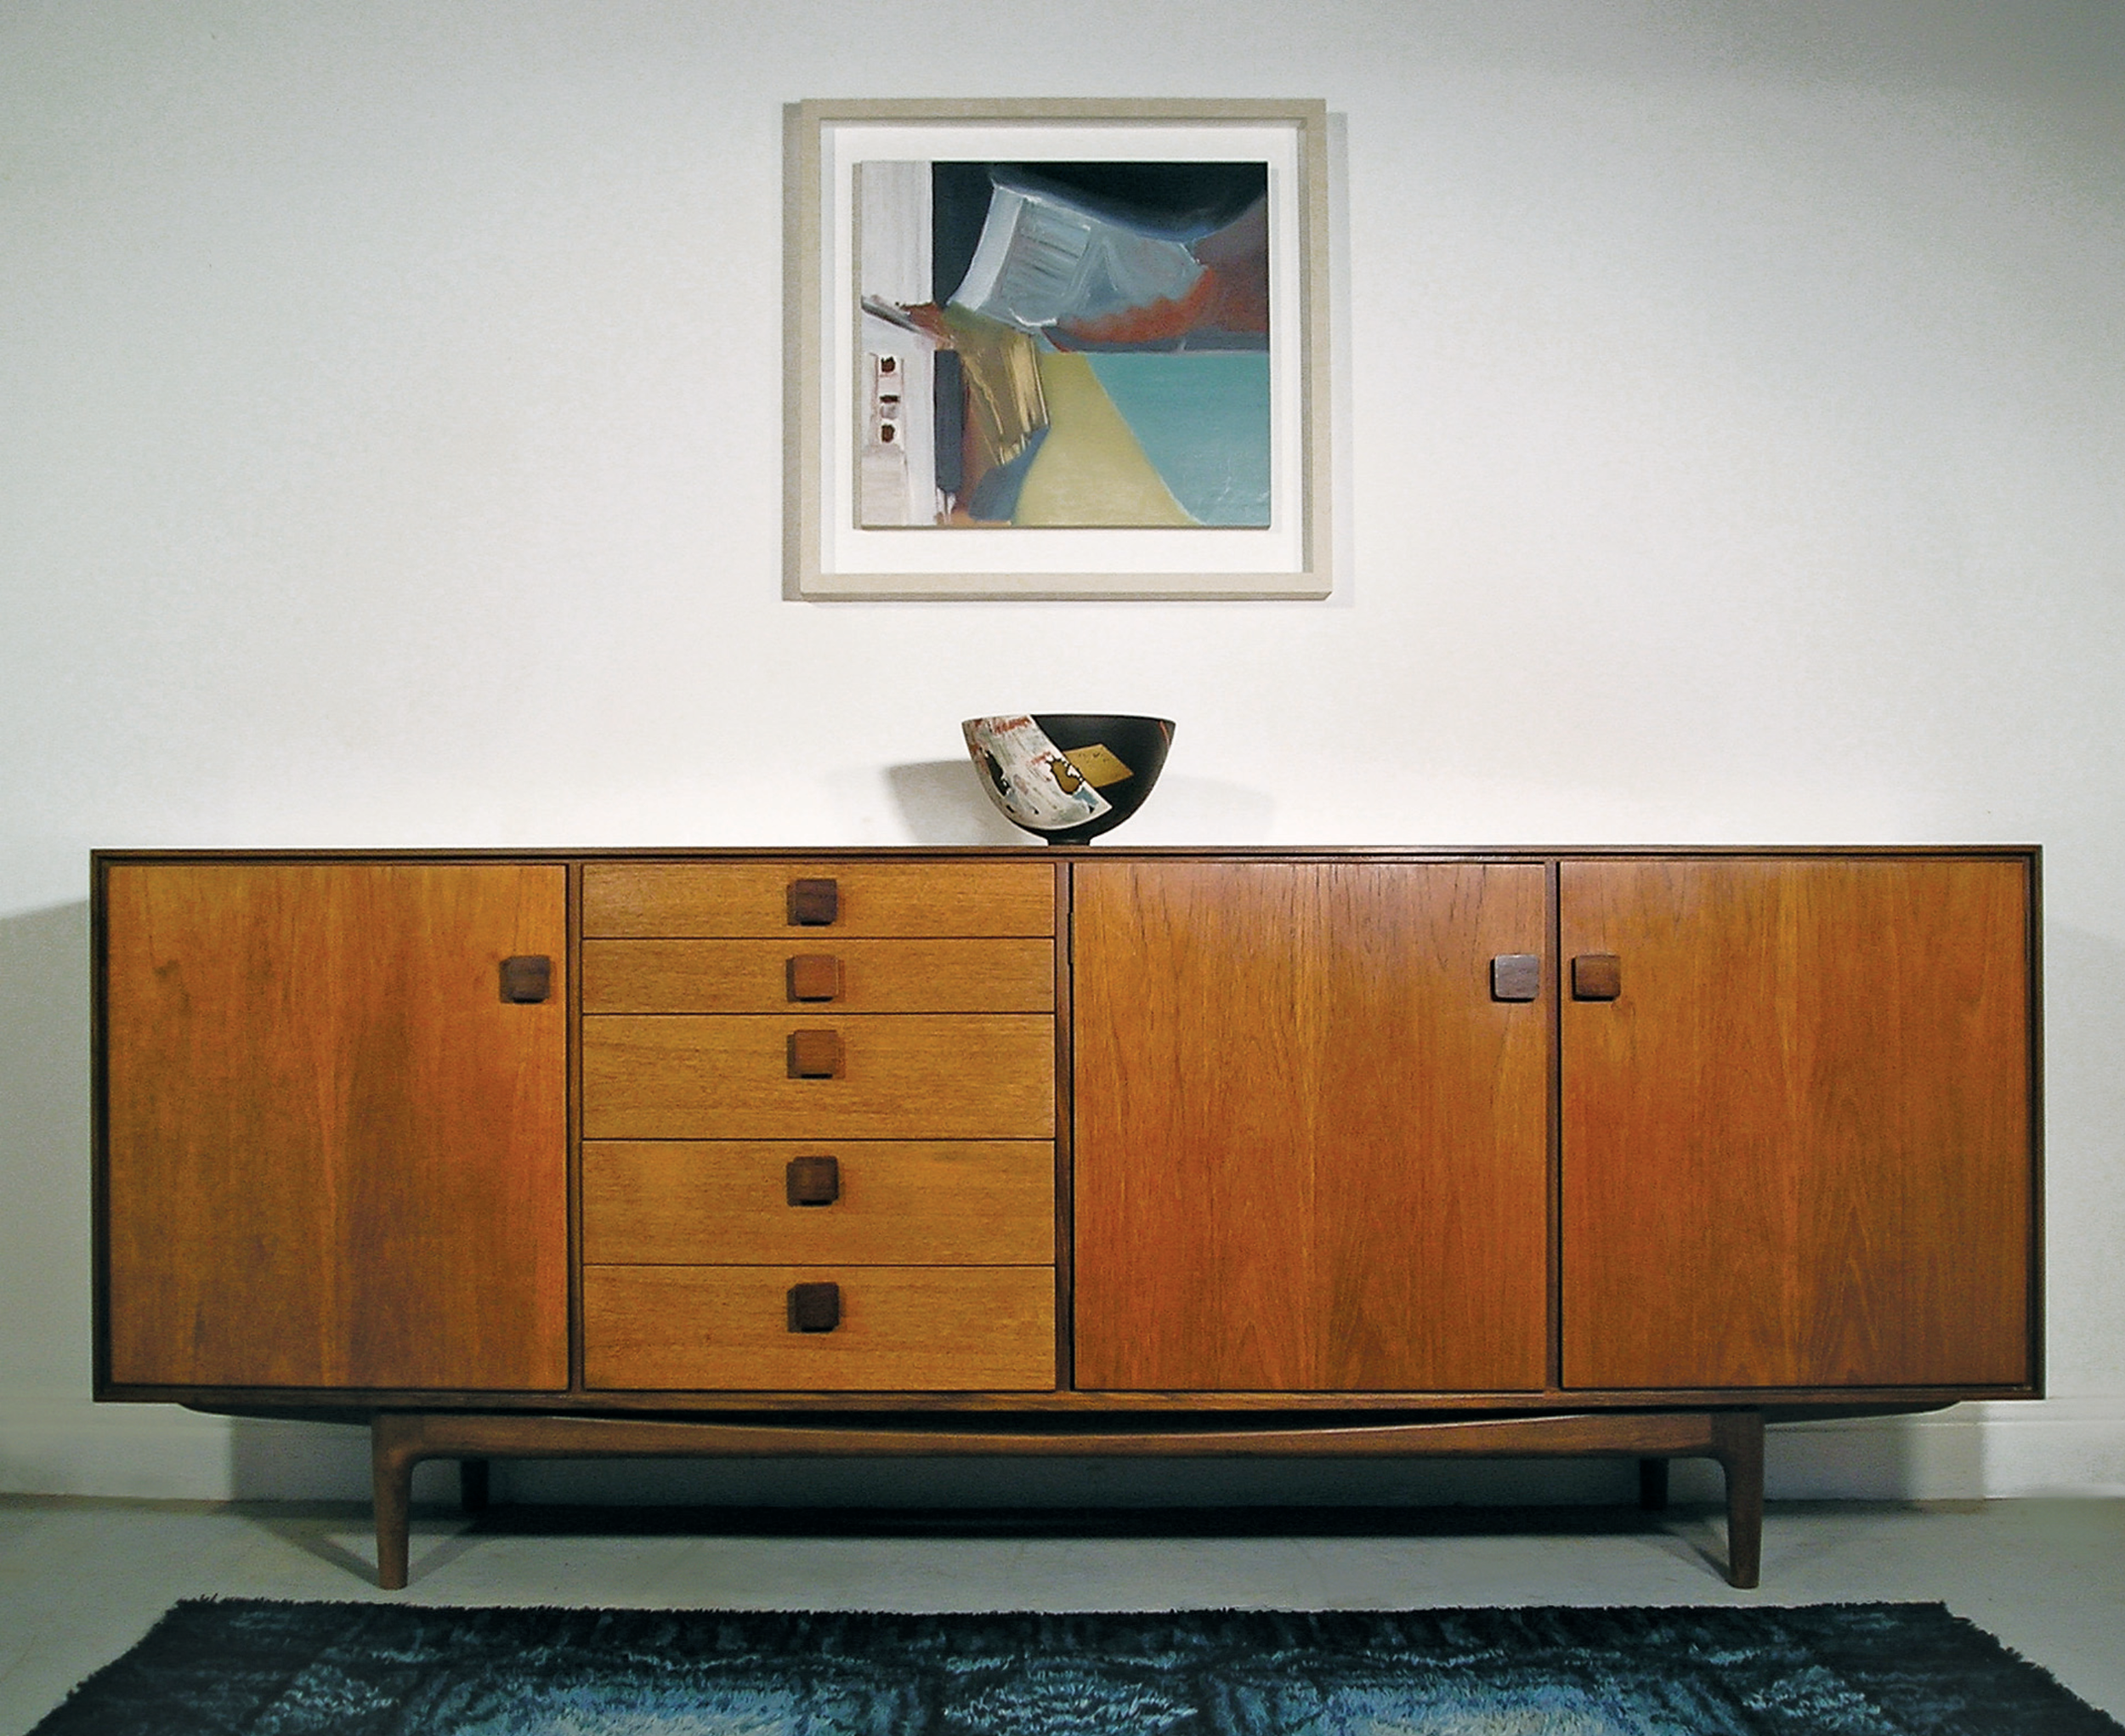 This incredibly stylish sideboard was designed by Kofod Larsen for the Danish Range which was launched in 1962